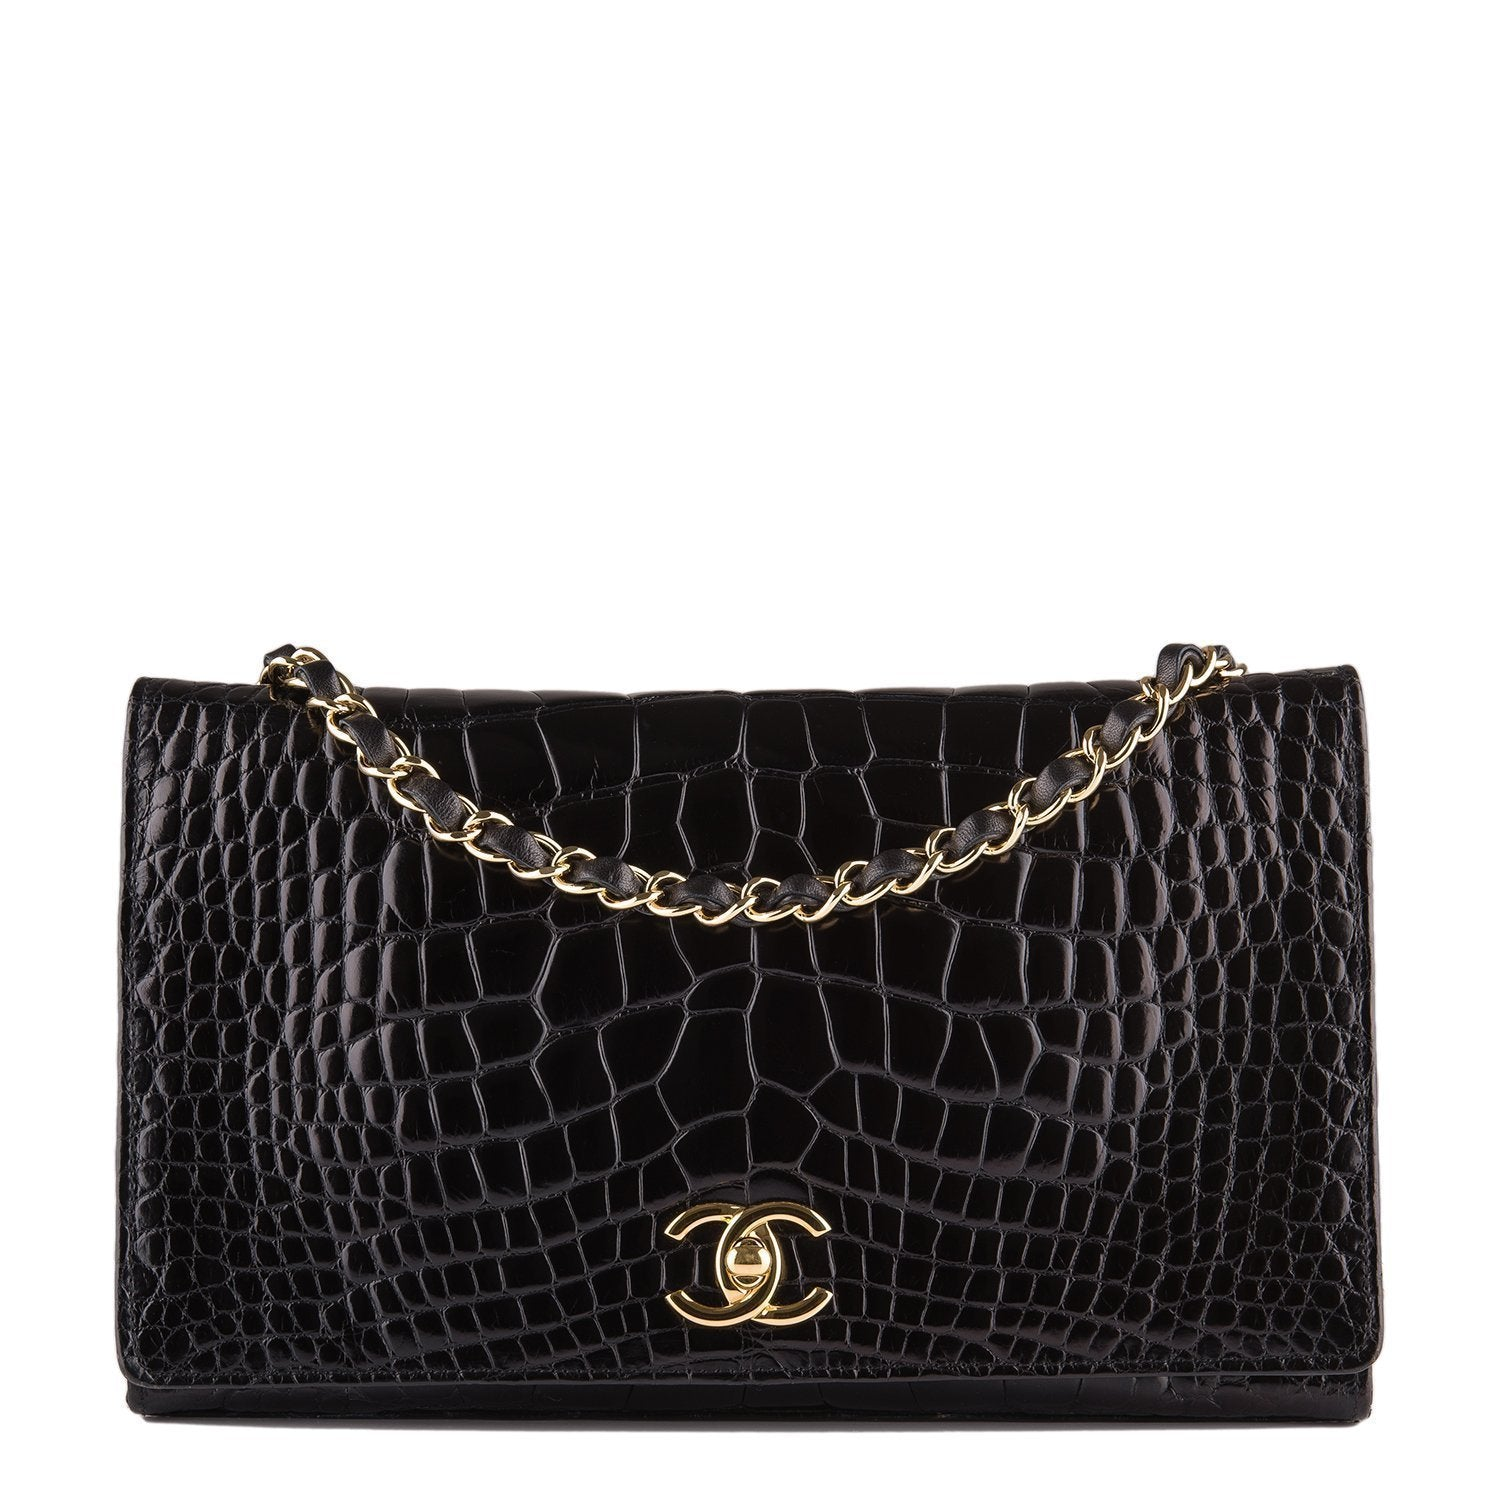 bbbdee20b33f Chanel Vintage Black Crocodile Full Flap Bag (Preloved - Mint) – Madison  Avenue Couture